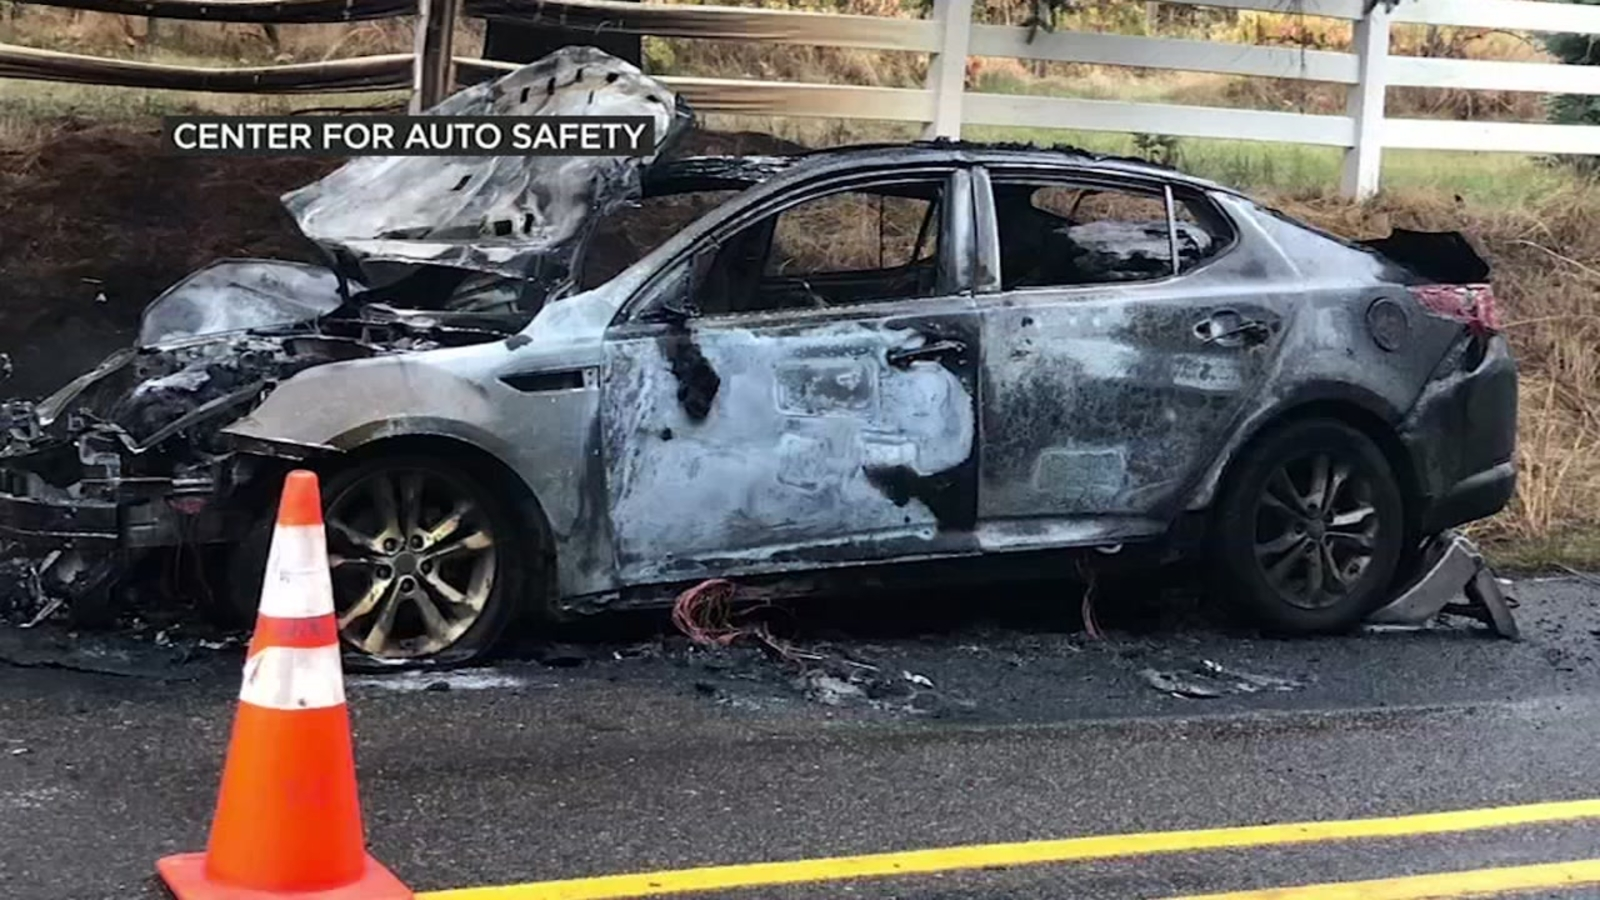 Bay Area man survives car fire, Hyundai and Kia now under investigation